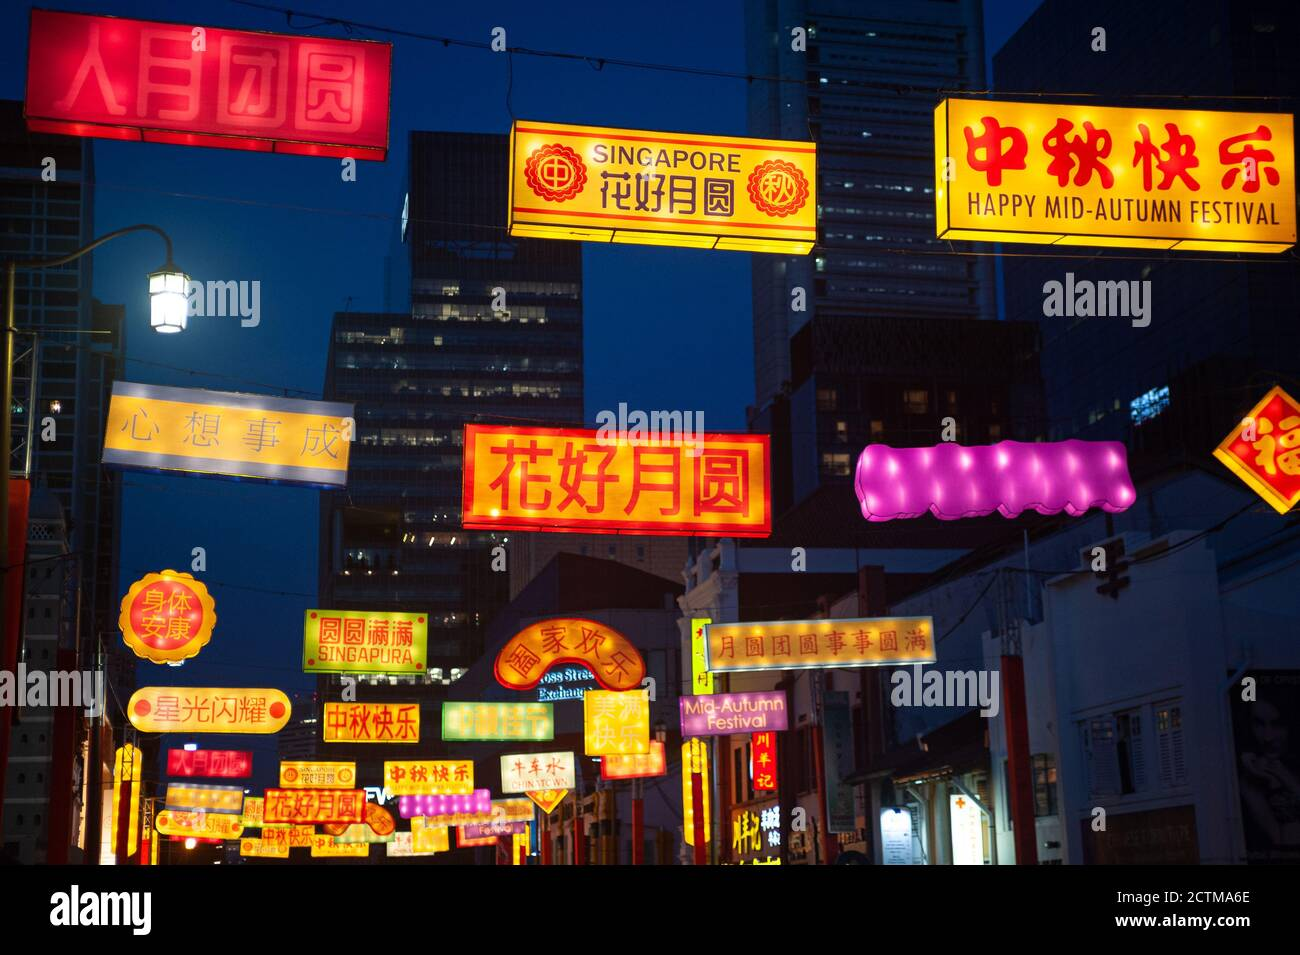 23 09 2020 Singapore Republic Of Singapore Asia A Road In Chinatown Decorated With Illuminated Banner Like Lanterns During Mid Autumn Festival Stock Photo Alamy